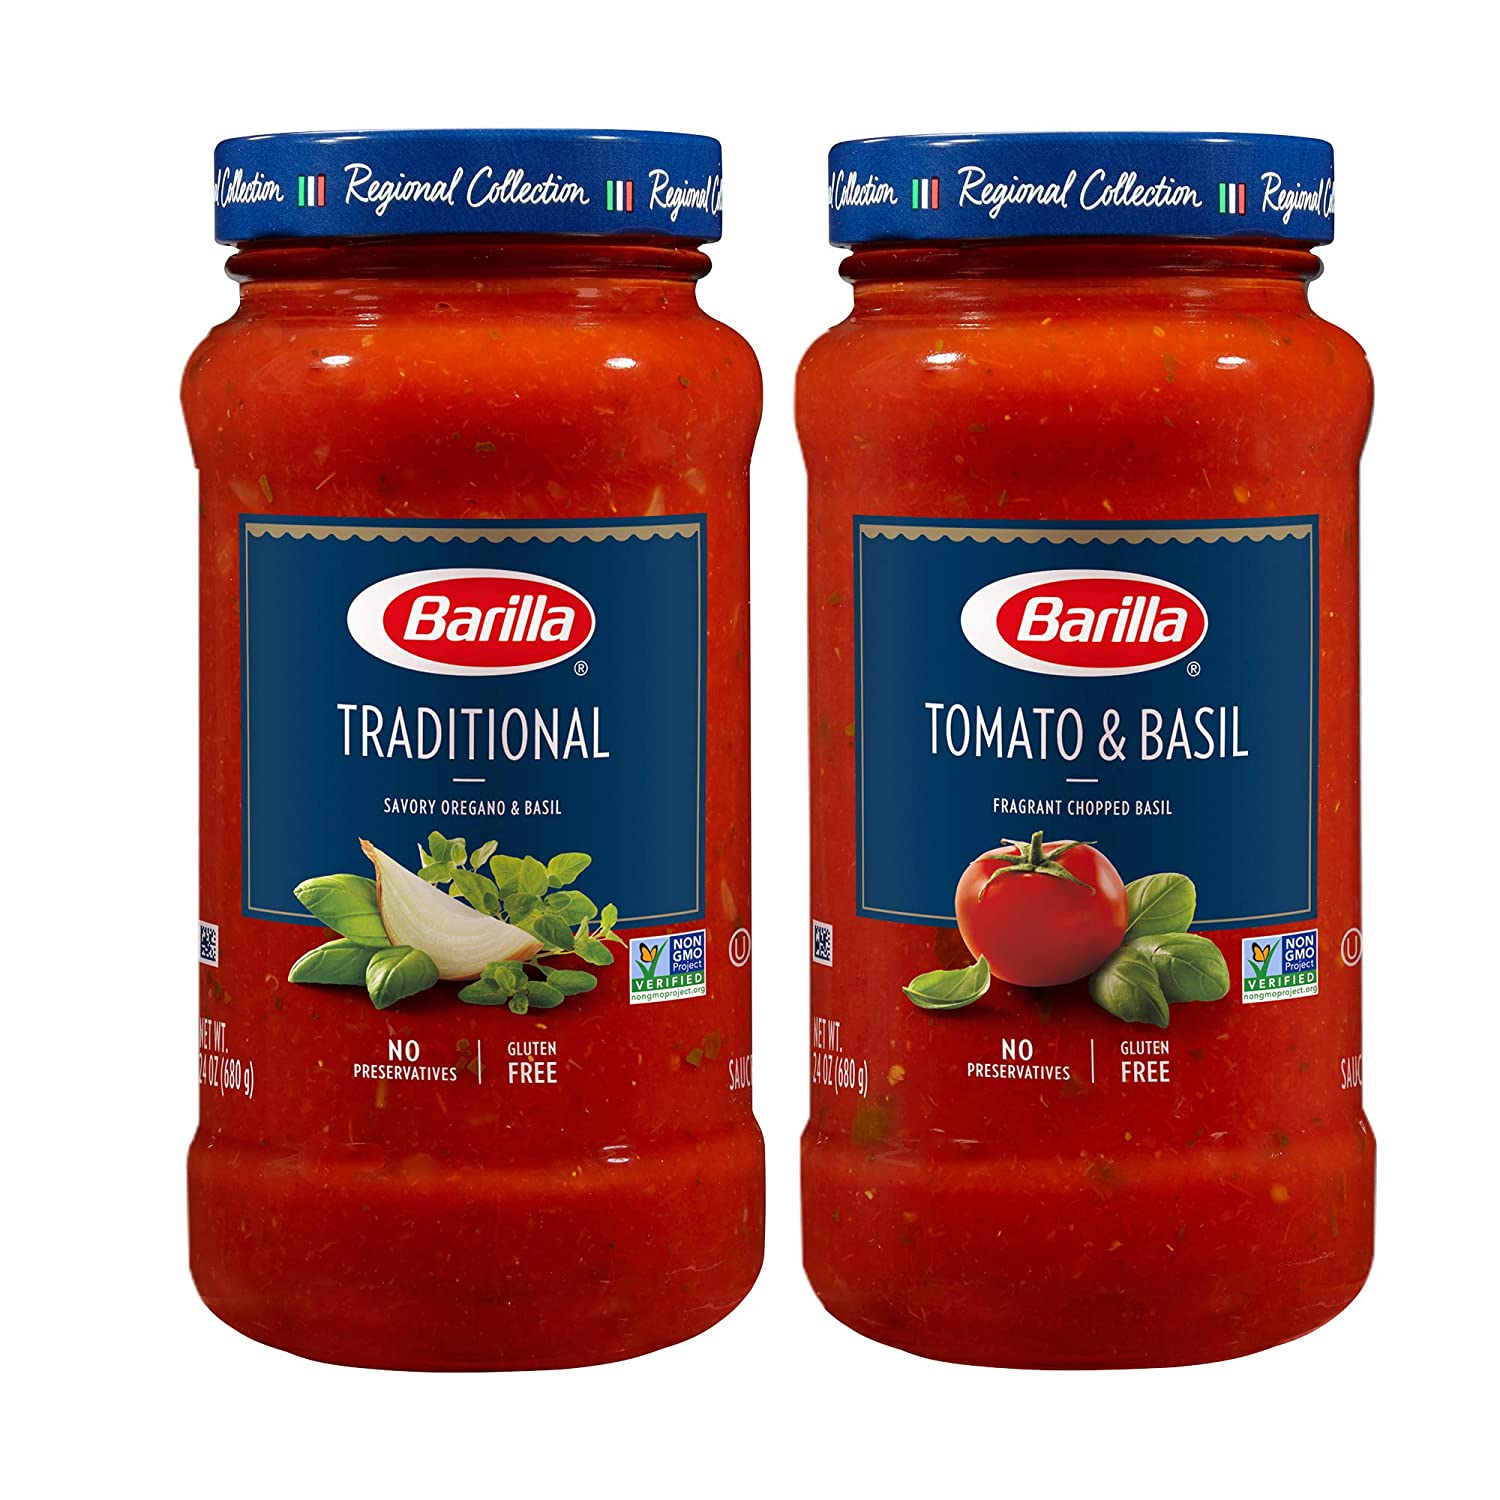 BARILLA Traditional Pasta Sauce review